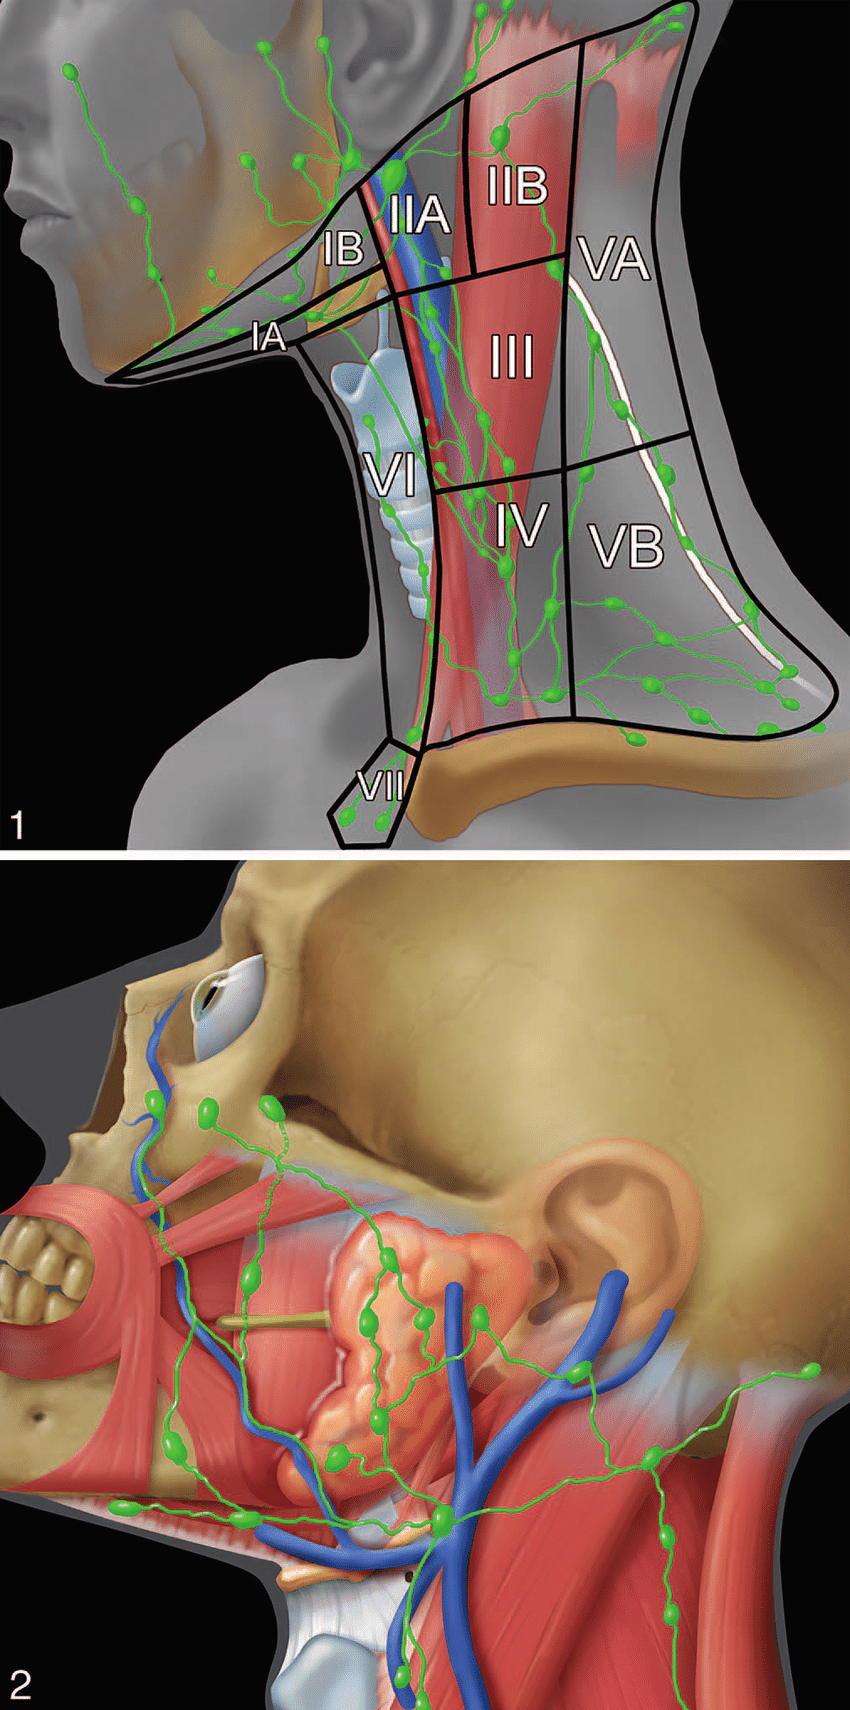 hight resolution of head and neck lymph node groups of the facial area including the parotid buccofacial